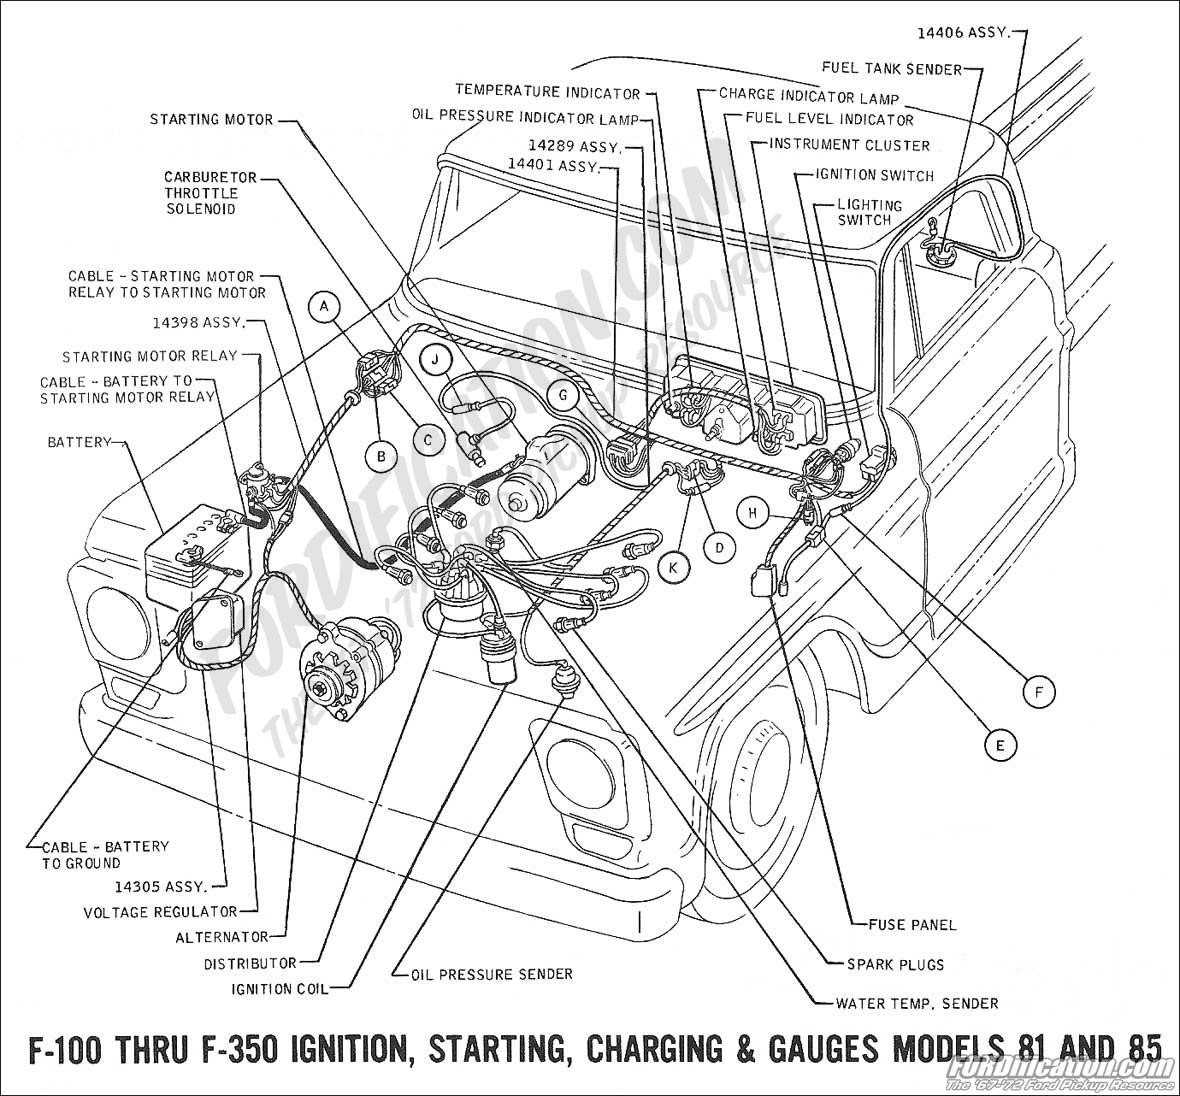 wiring 1969charging 69 f100 wiring diagram 1973 ford f100 wiring diagram \u2022 wiring 1966 ford truck wiring diagram at nearapp.co